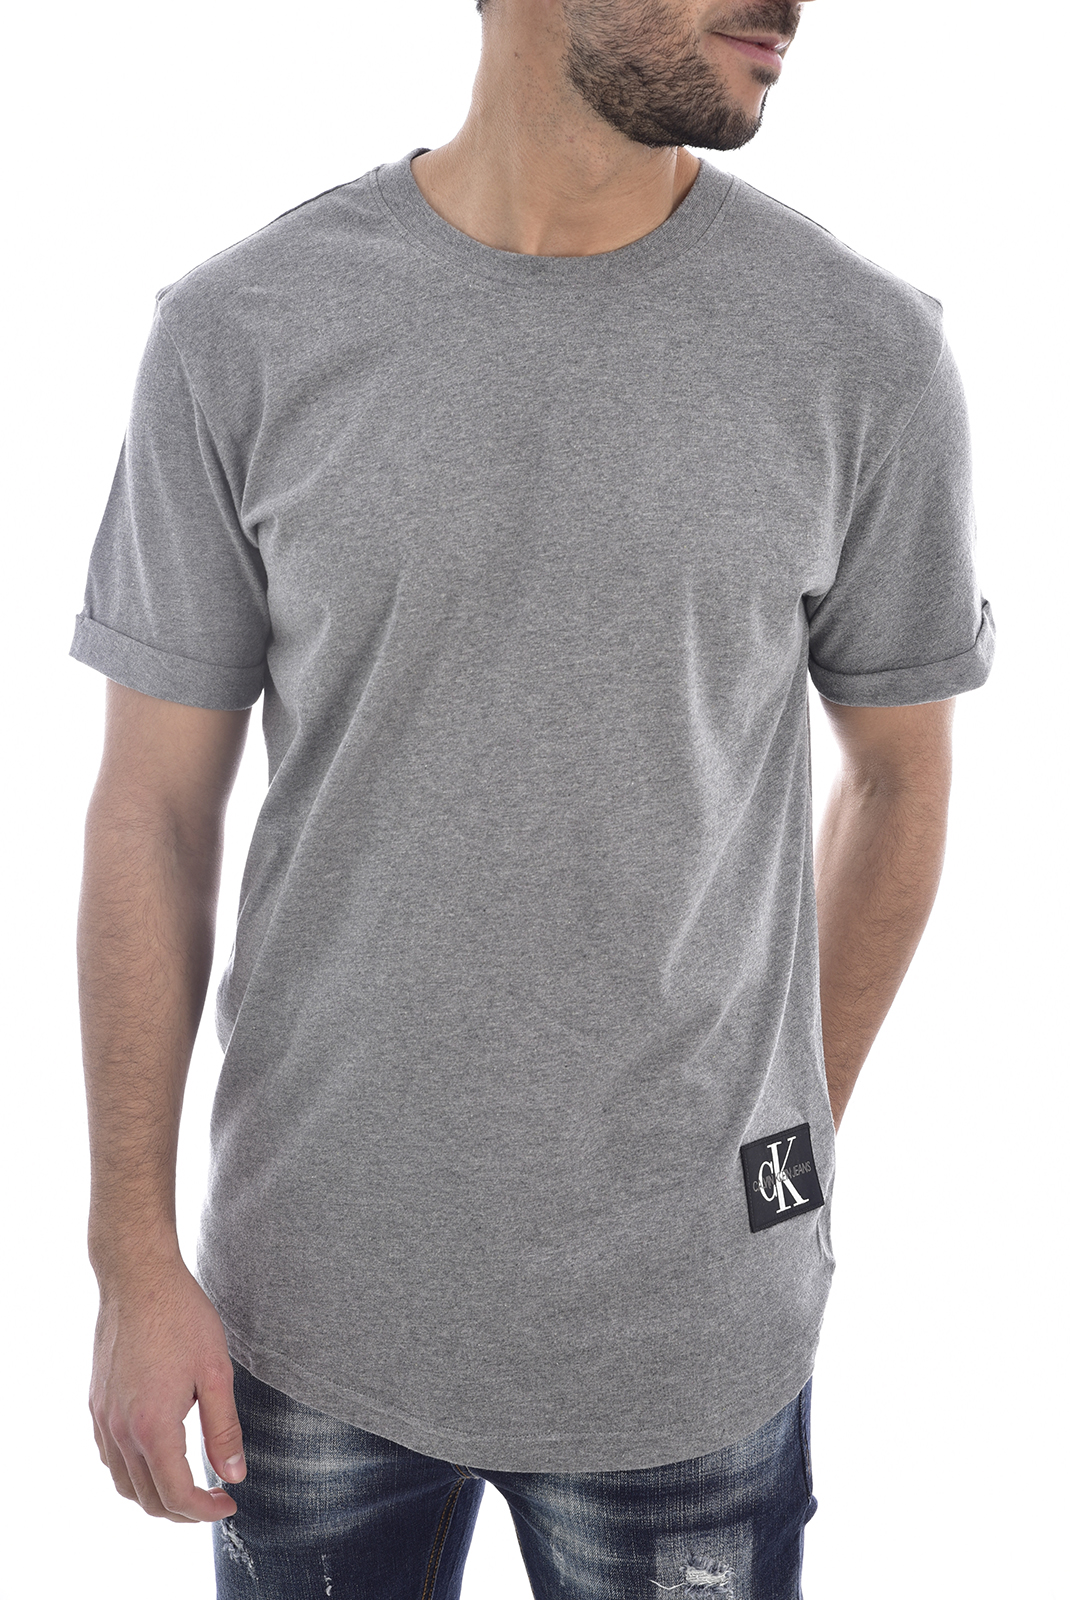 T-S manches courtes  Calvin klein J30J315319 - BADGE TURN UP P2F MID GREY HEATHER